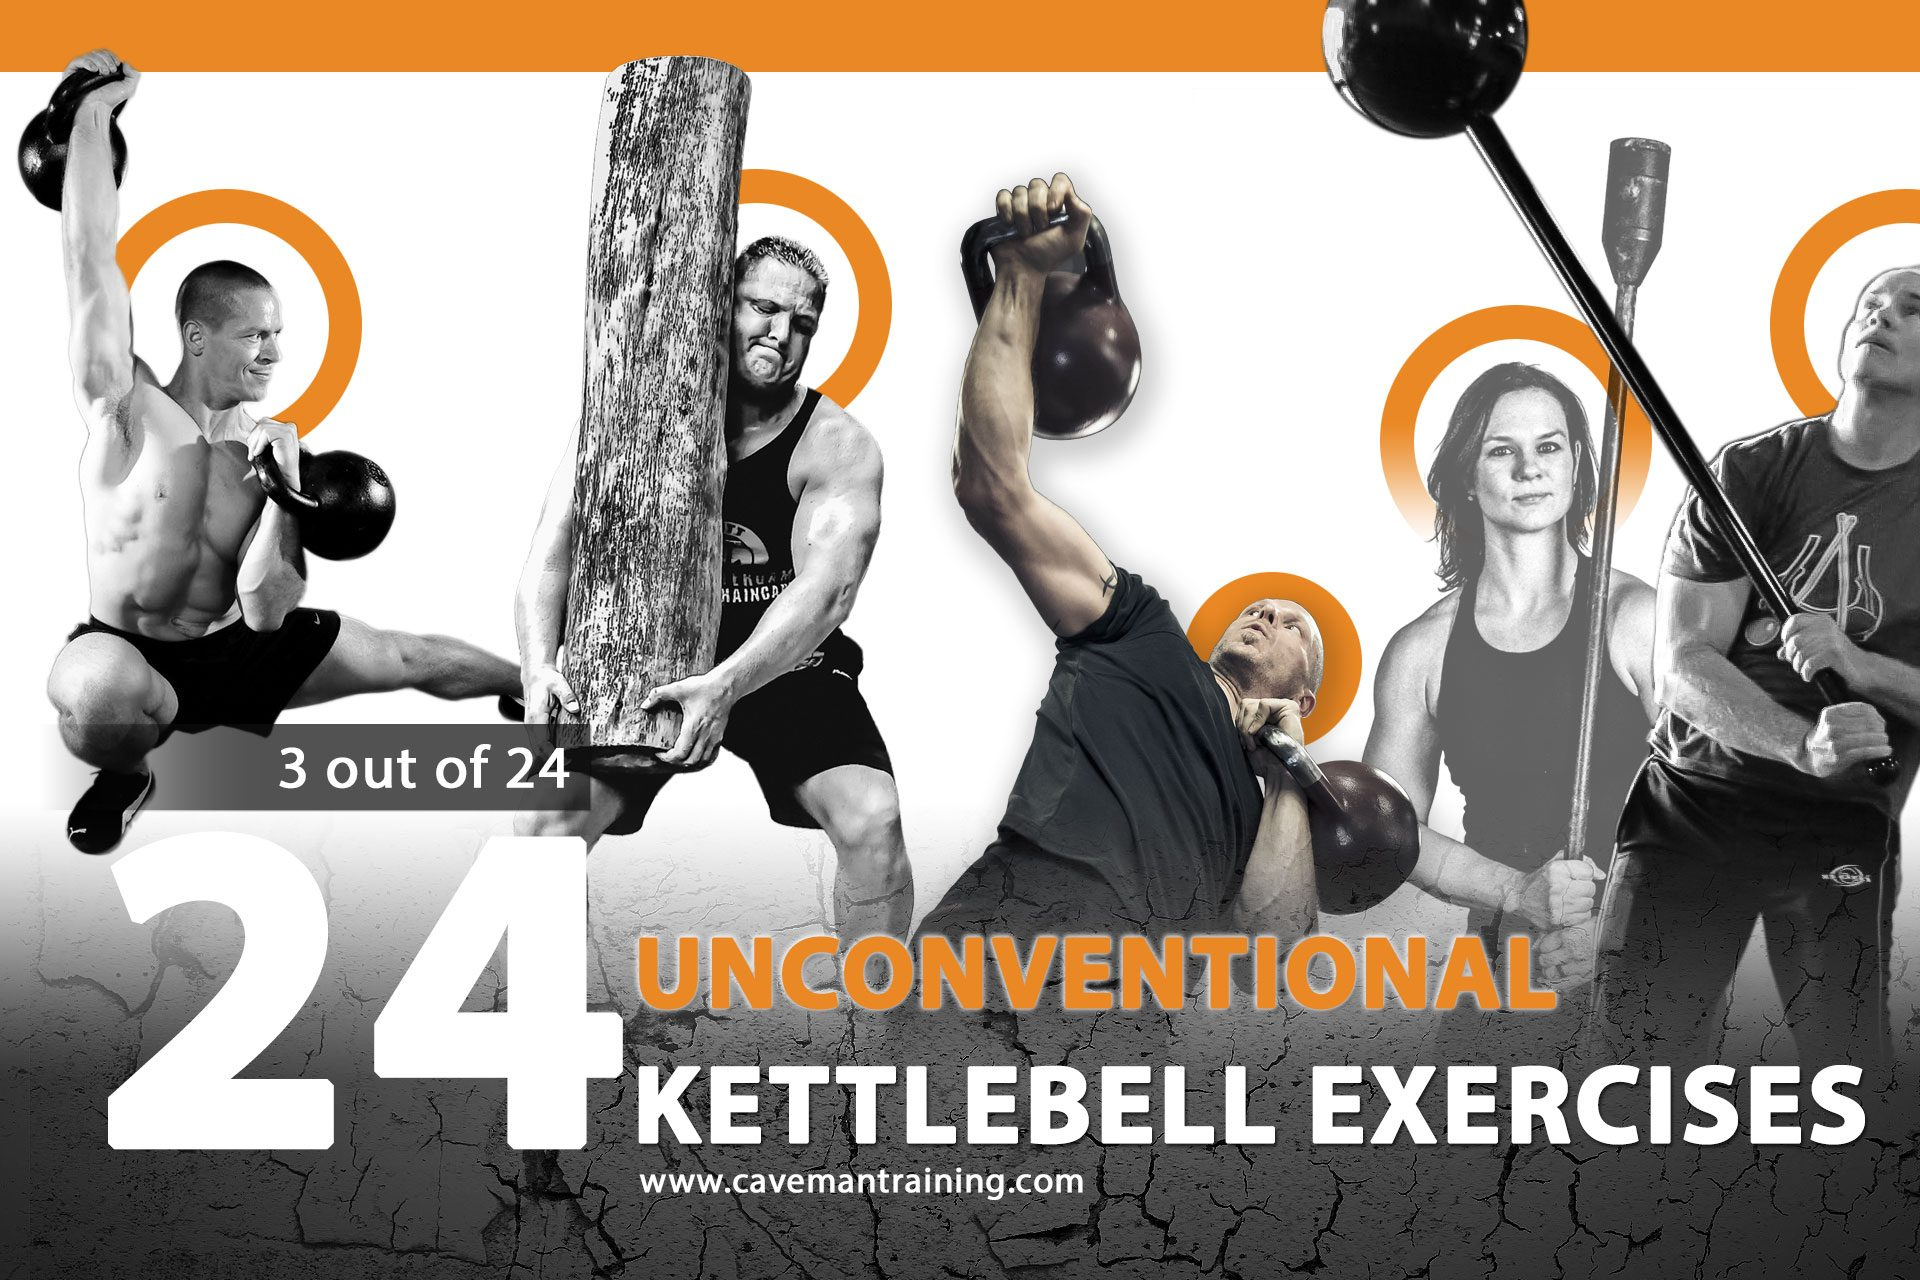 3 out of 24 unconventional kettlebell exercises